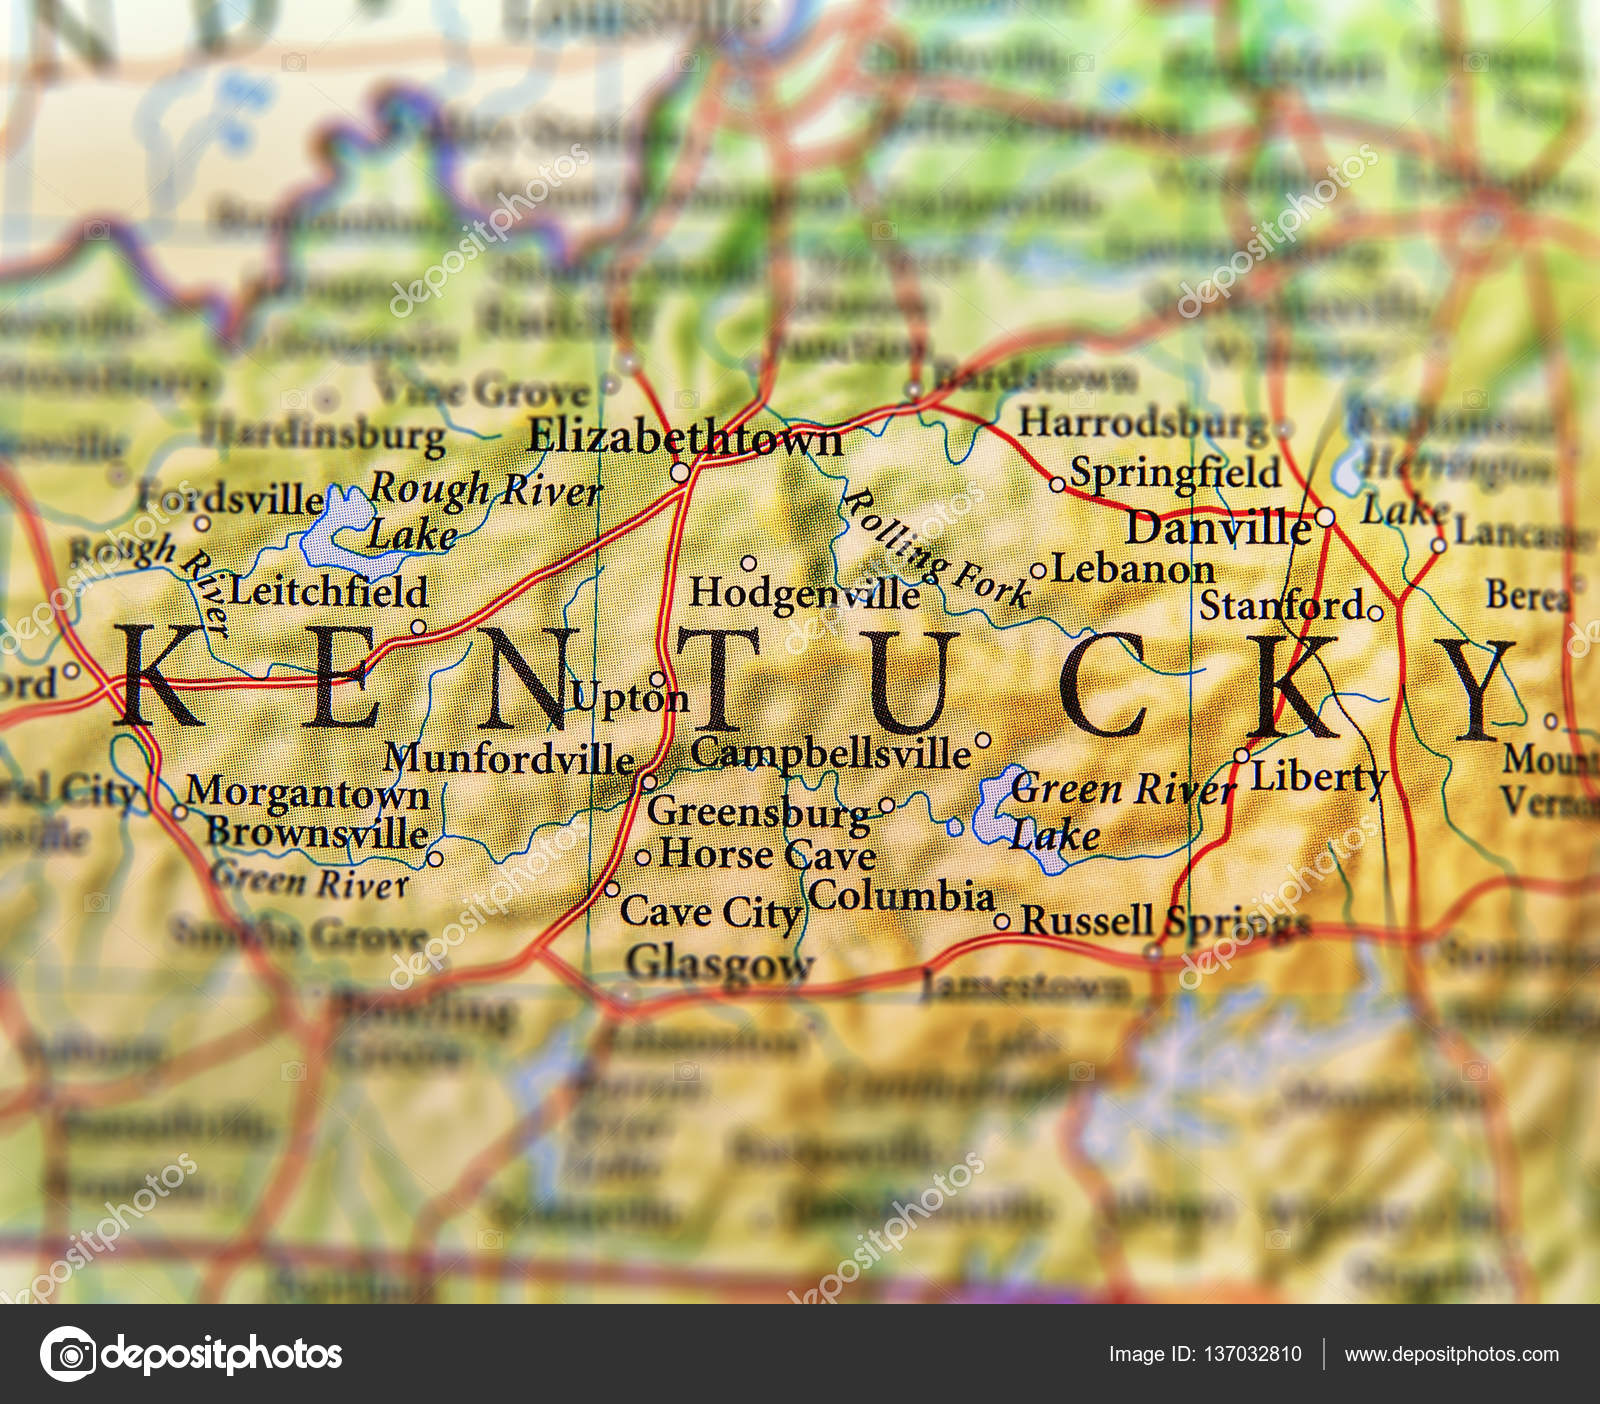 Geographic map of US state Kentucky with important cities — Stock on ky road map of kentucky, ky state map major cities, ky state paduke, map of alabama major cities, ky state map by county, ky state produce, ky state paducah hospitals, ky state road map, ky map with counties and cities, map of tn cities, map of all cities, ky state parks map of resorts, kentucky cities, map of ky cities, ky state map blue, ky state topographical map, map of massachusetts towns and cities, ky highway map, ky usa map,